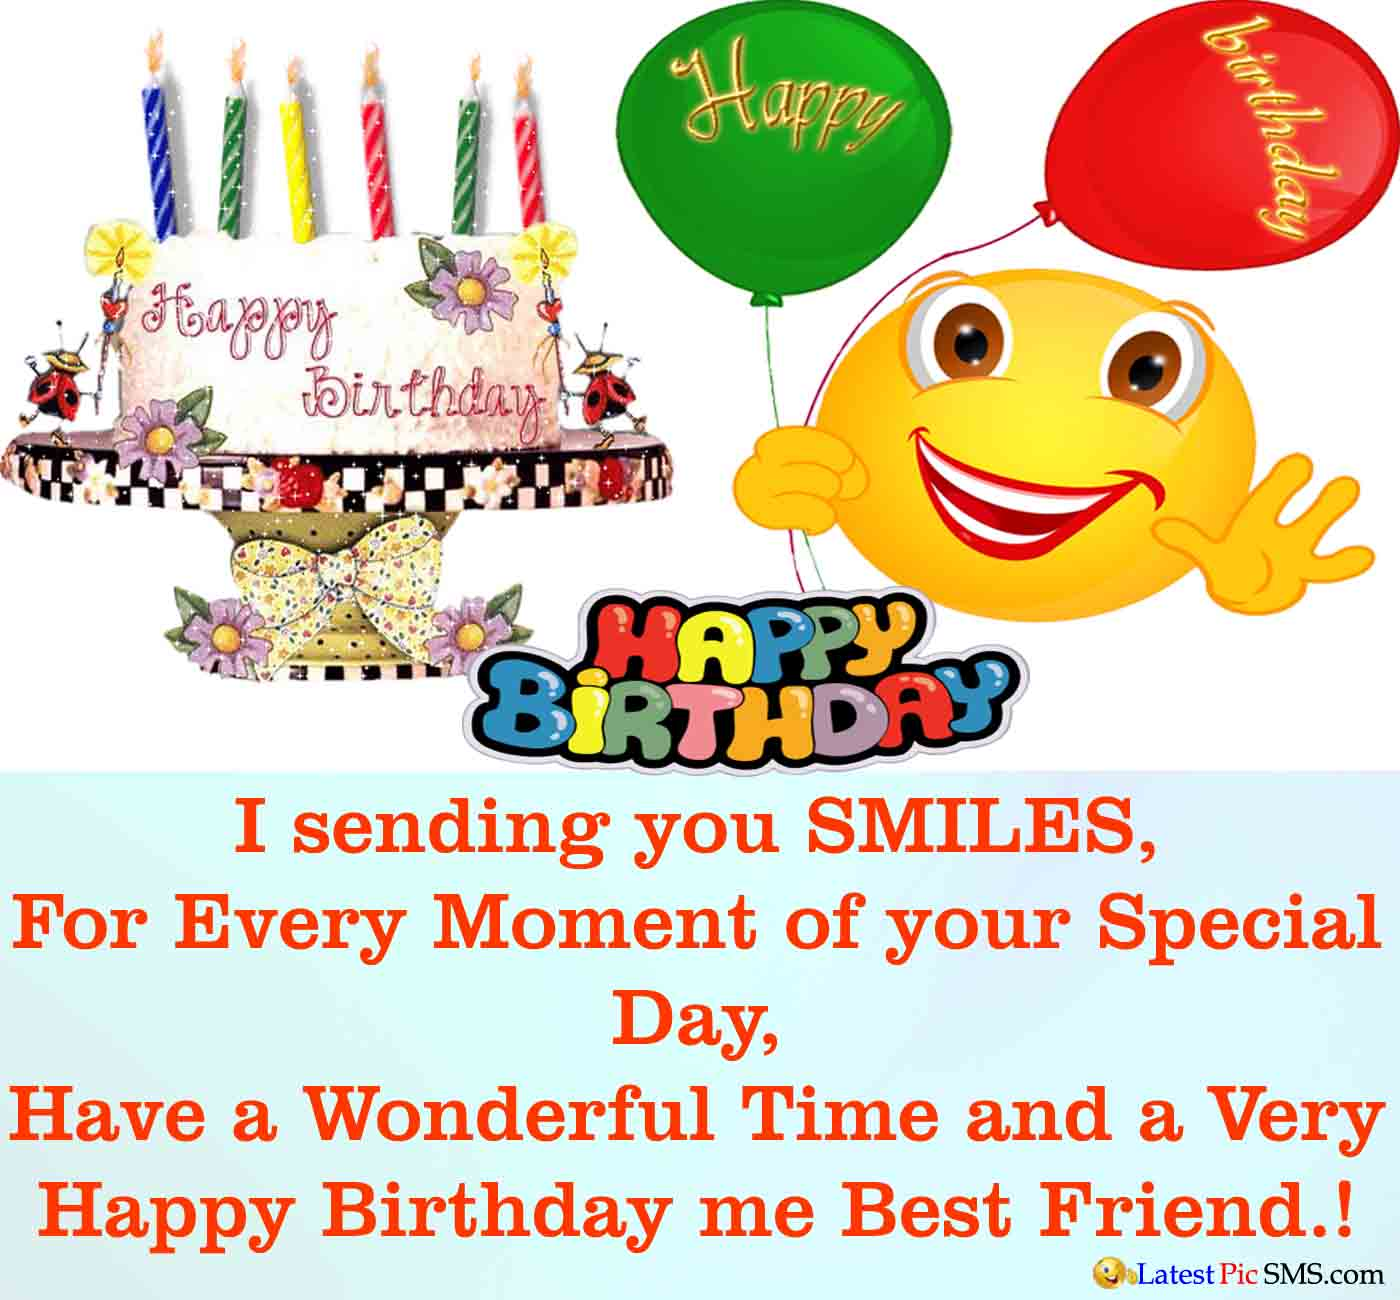 Funny happy birthday wishes for best friend with images romantic funny happy birthday wishes for girlfriend kristyandbryce Gallery